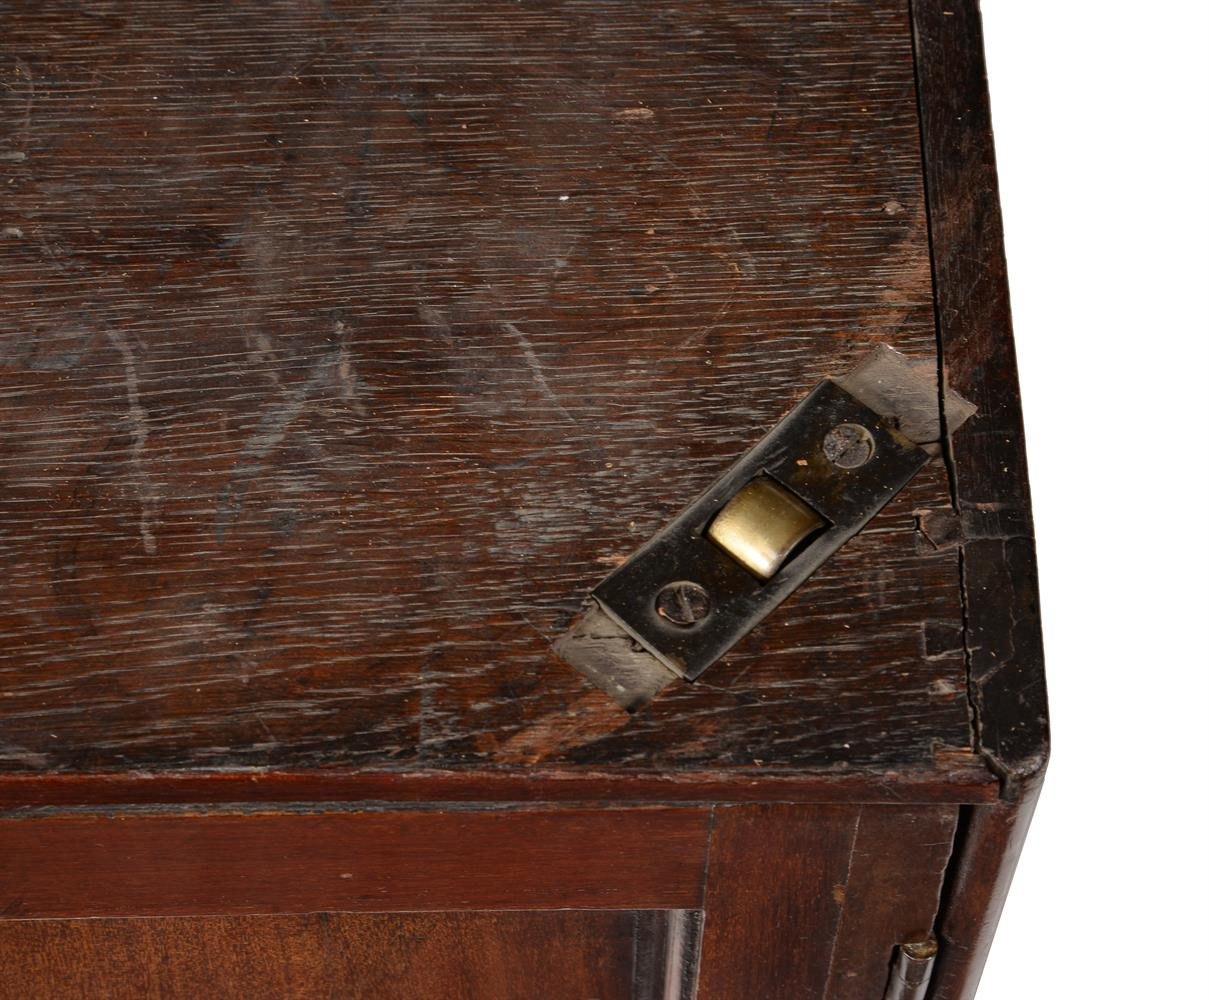 A GEORGE III MAHOGANY LIBRARY OR RENT TABLE, CIRCA 1780 - Image 7 of 7